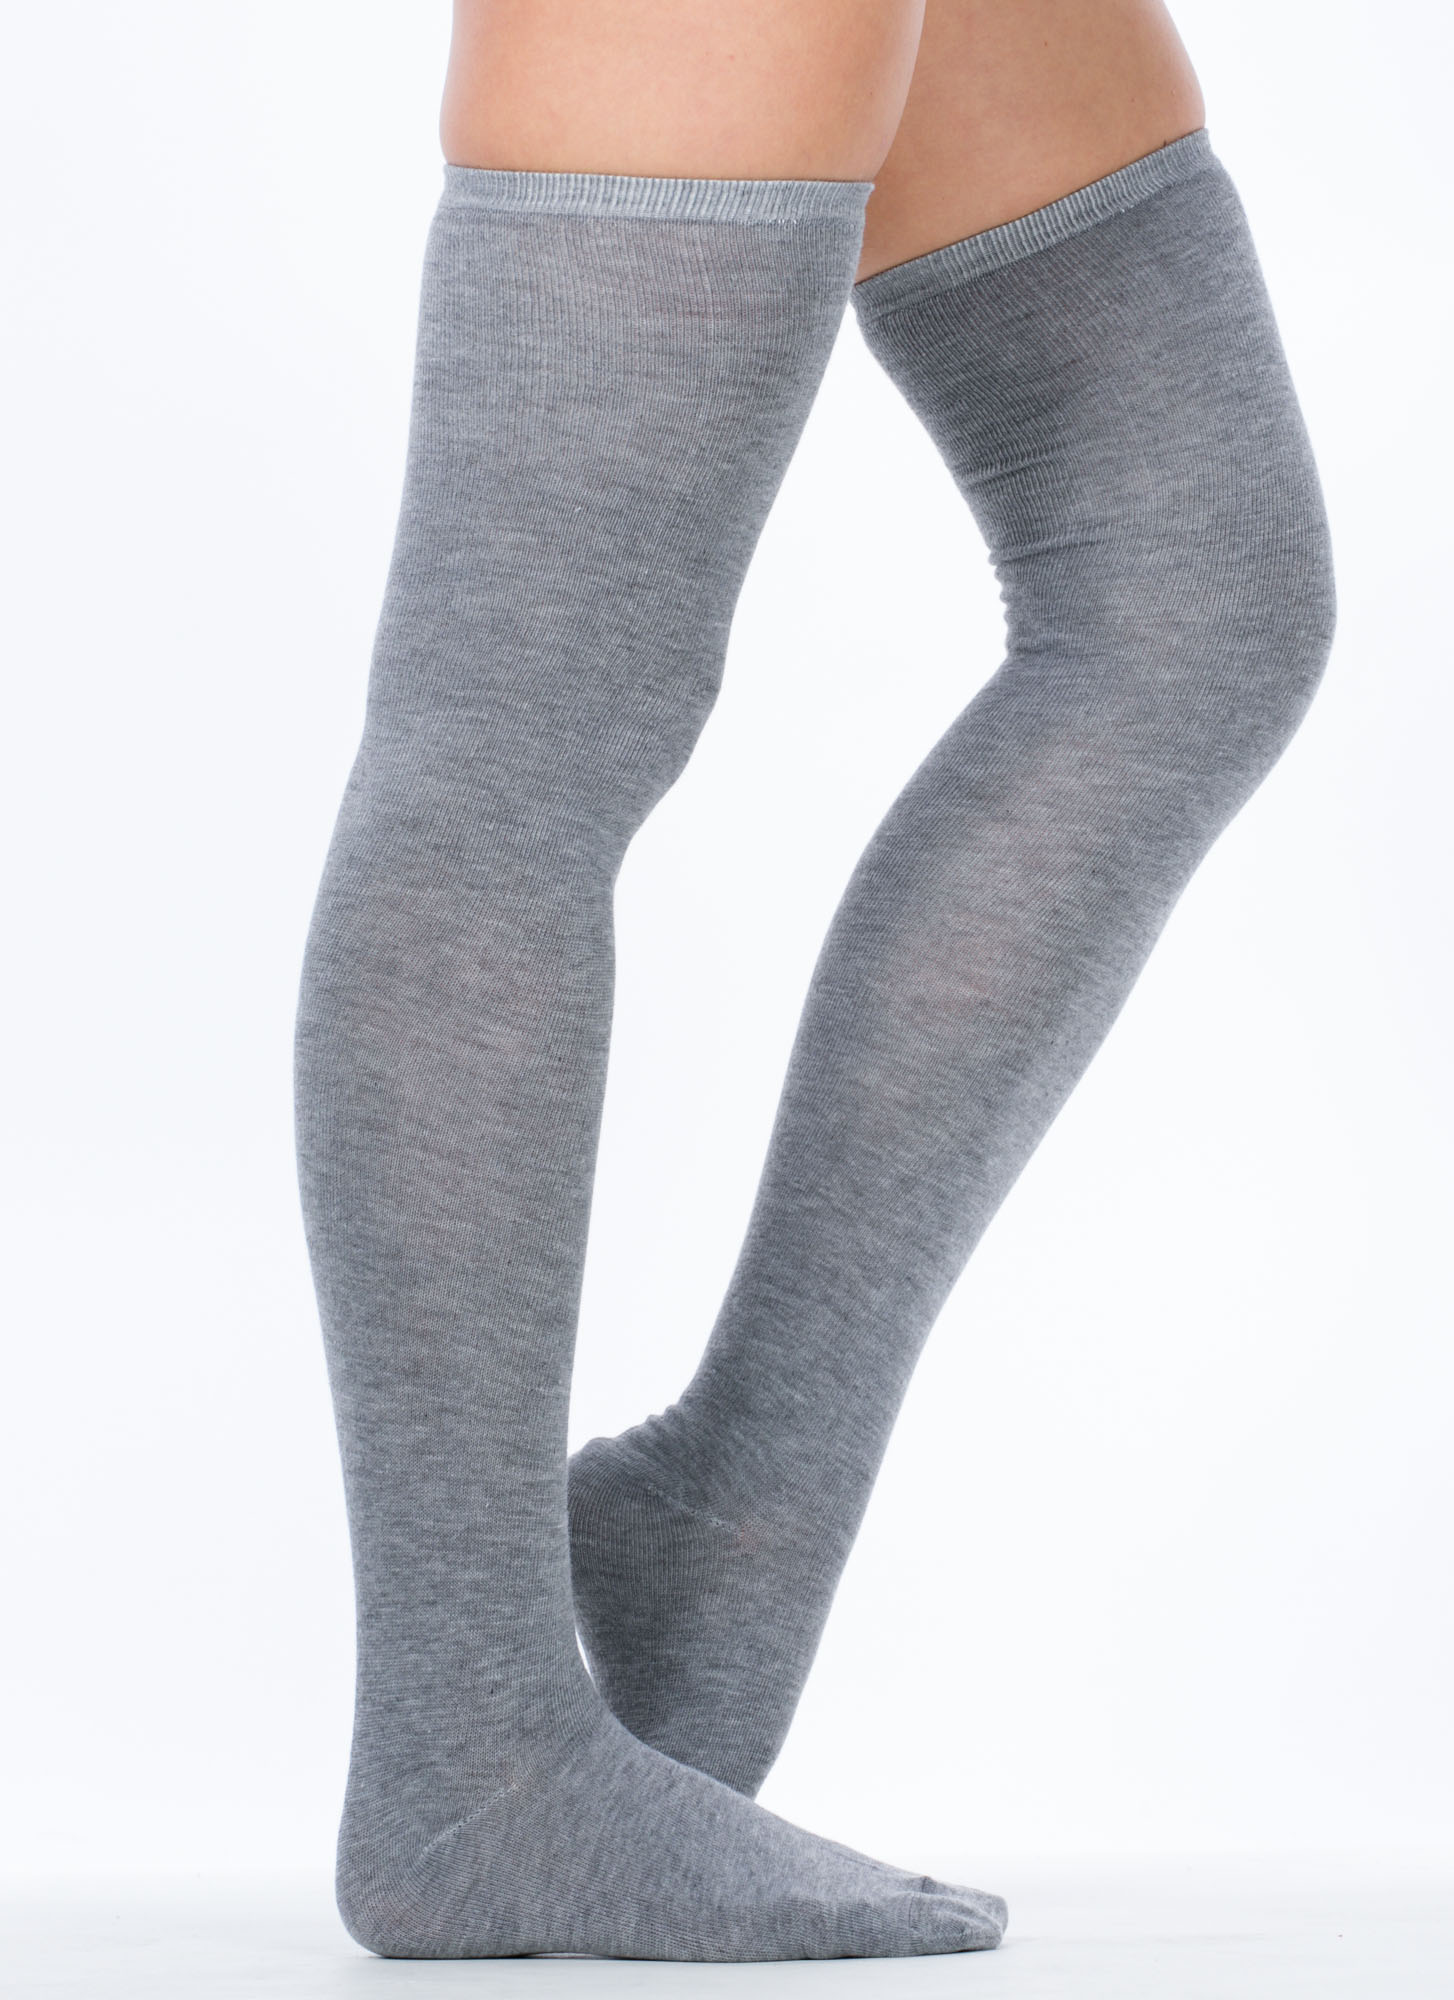 Thigh High Socks HGREY